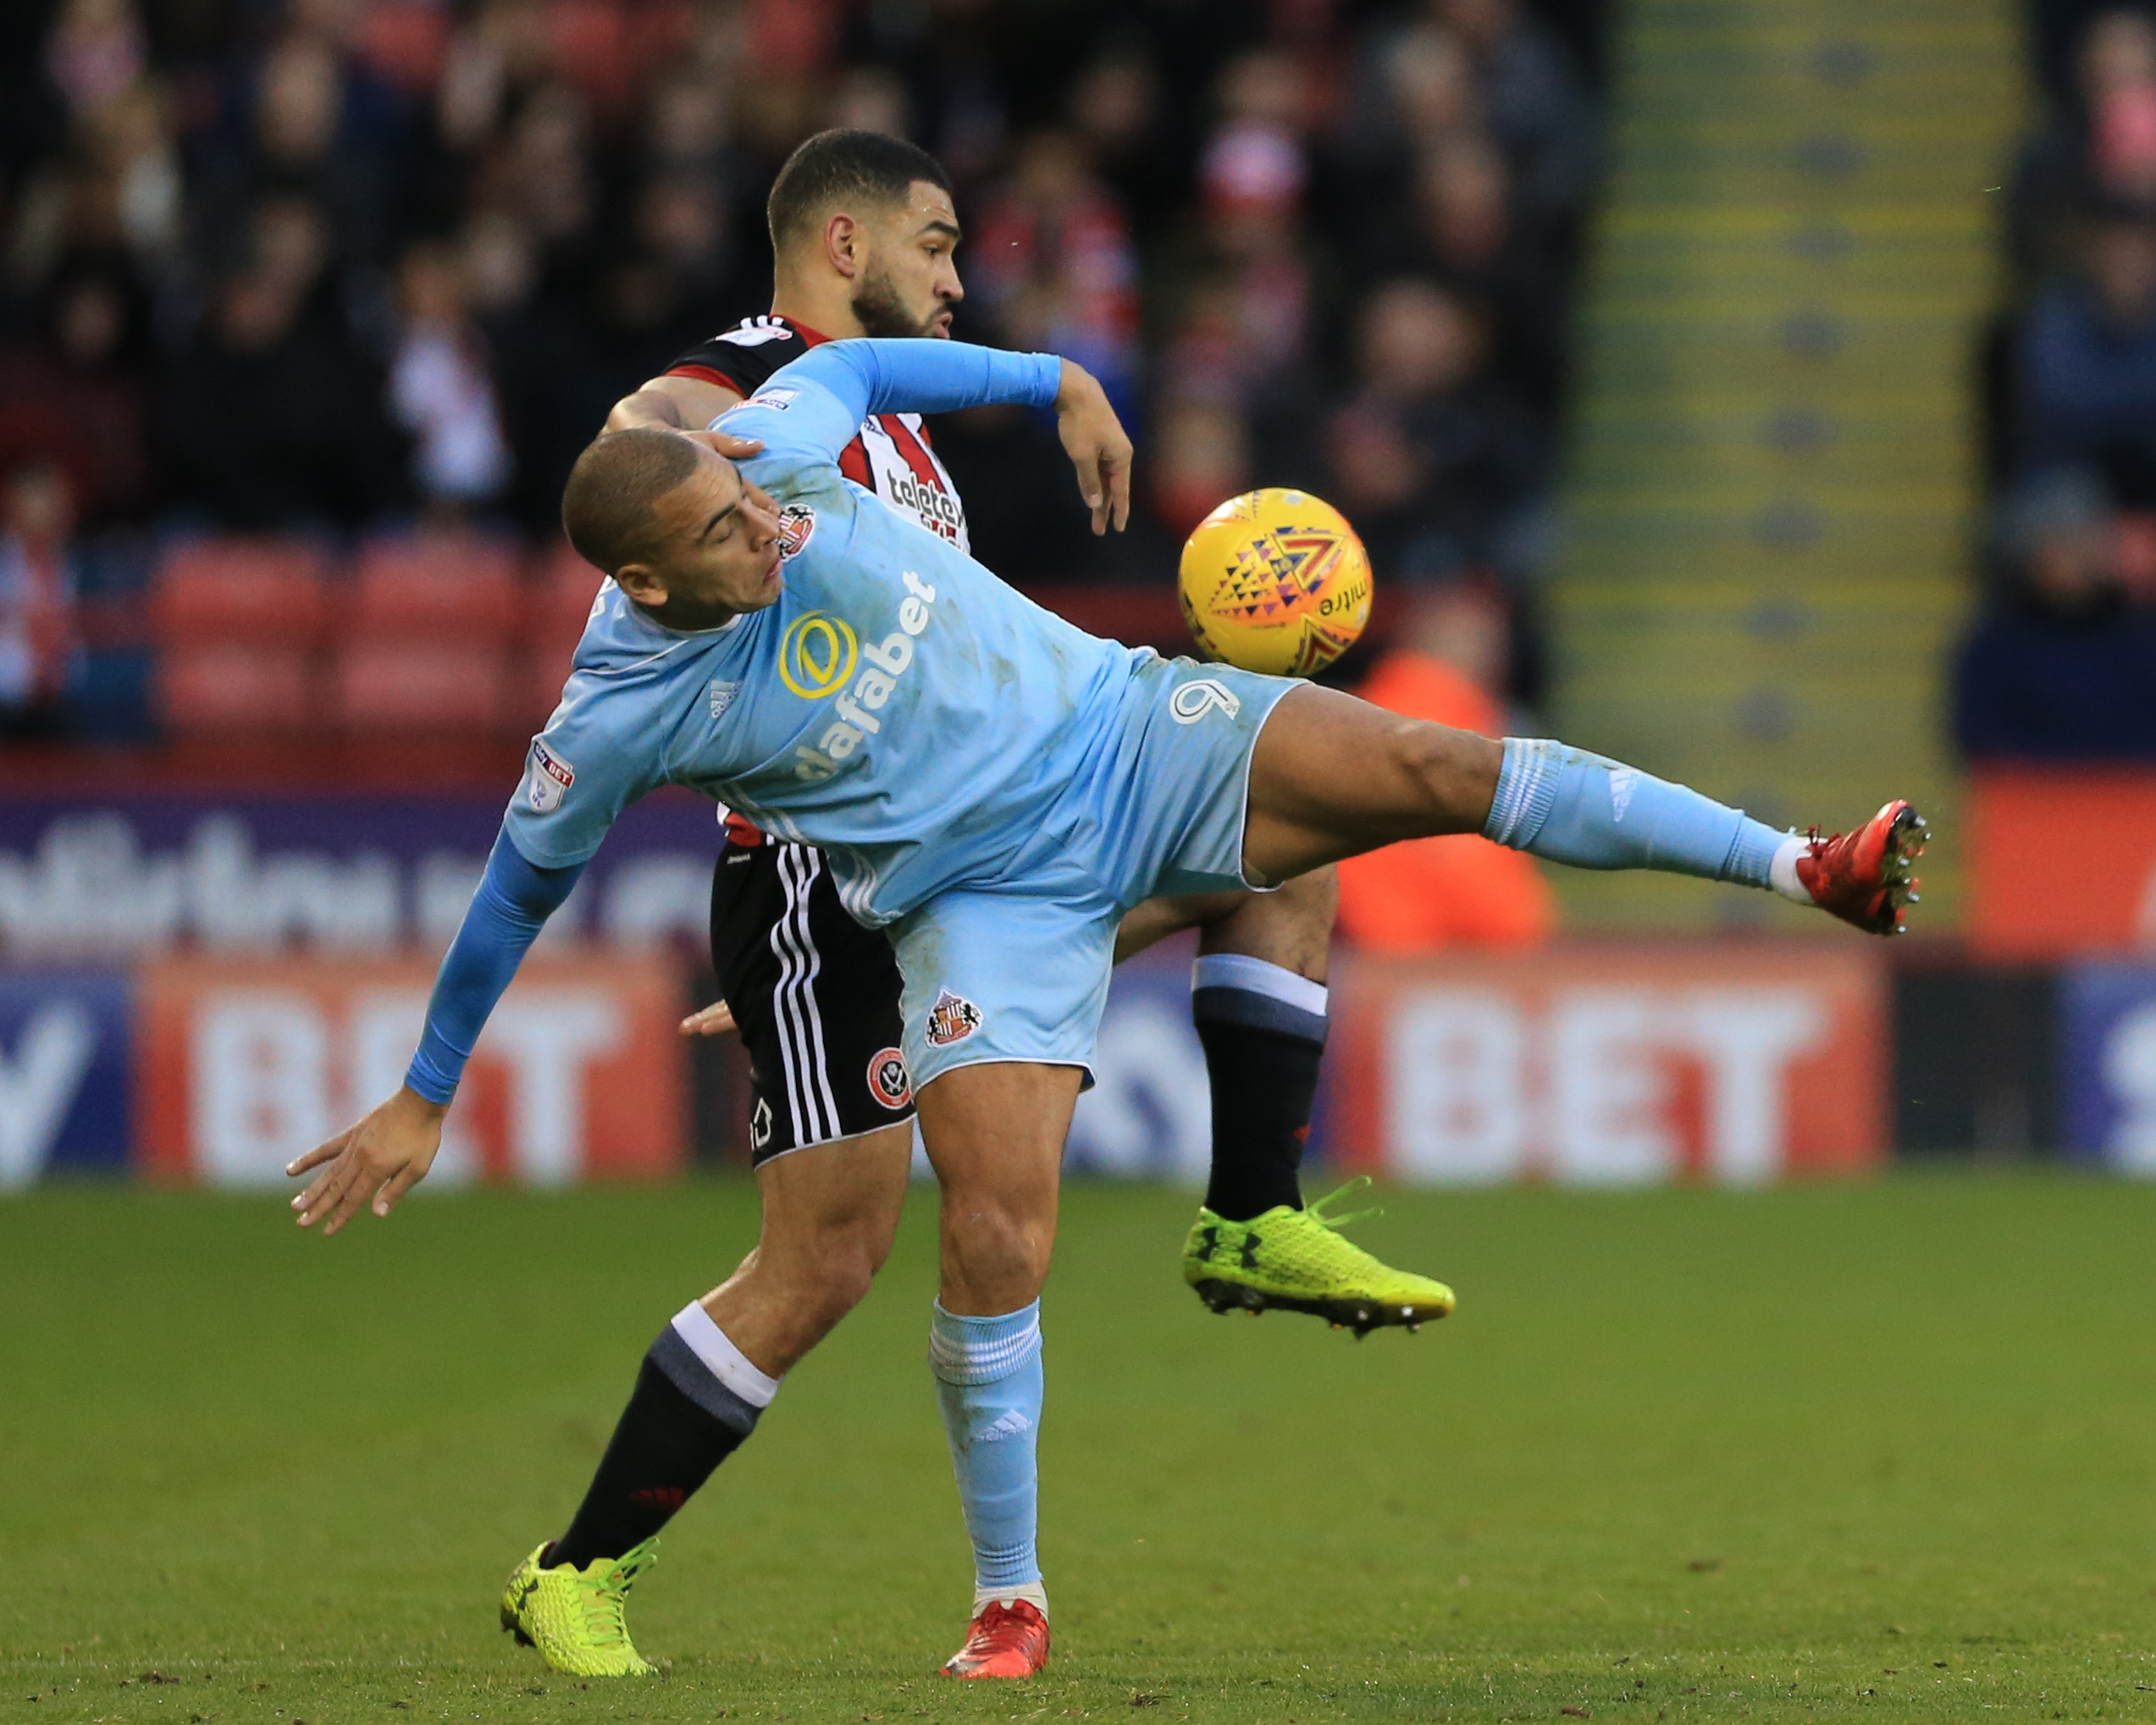 James Vaughan secures move to Wigan from Sunderland